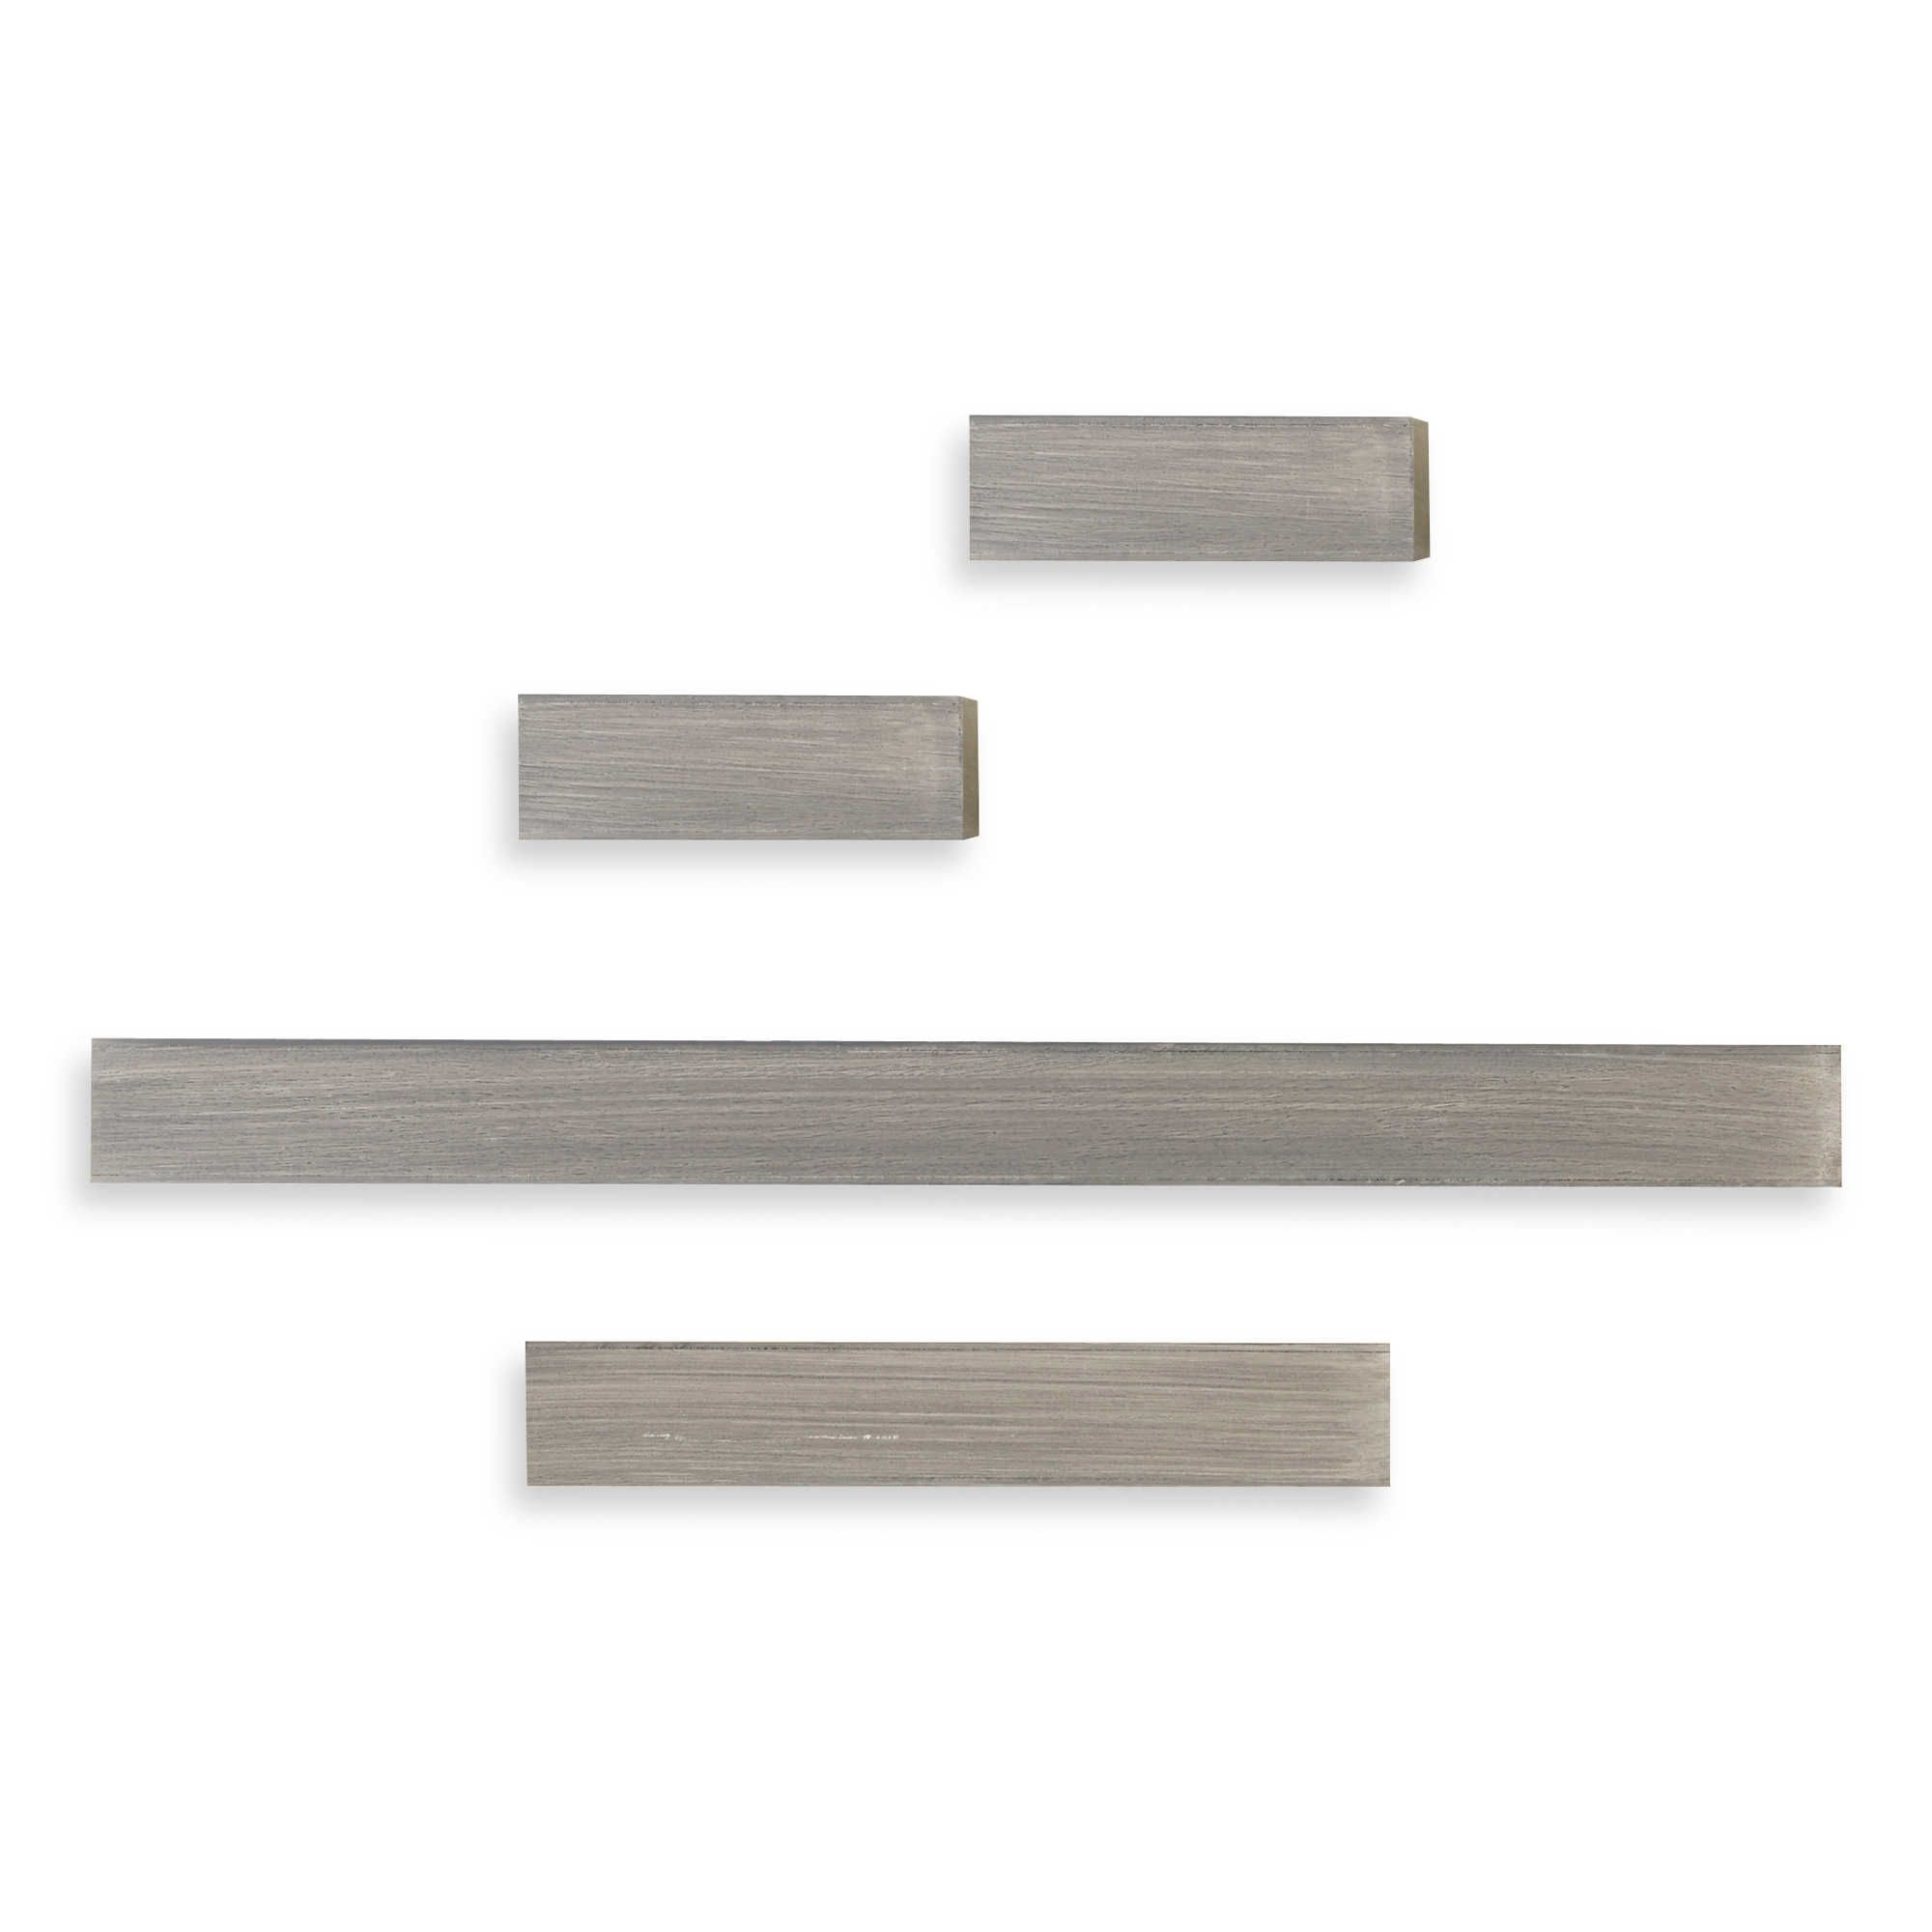 Melannco Floating Shelves Amusing Melannco® Floating Shelves In Grey Set Of 4  Living Room Decorating Design